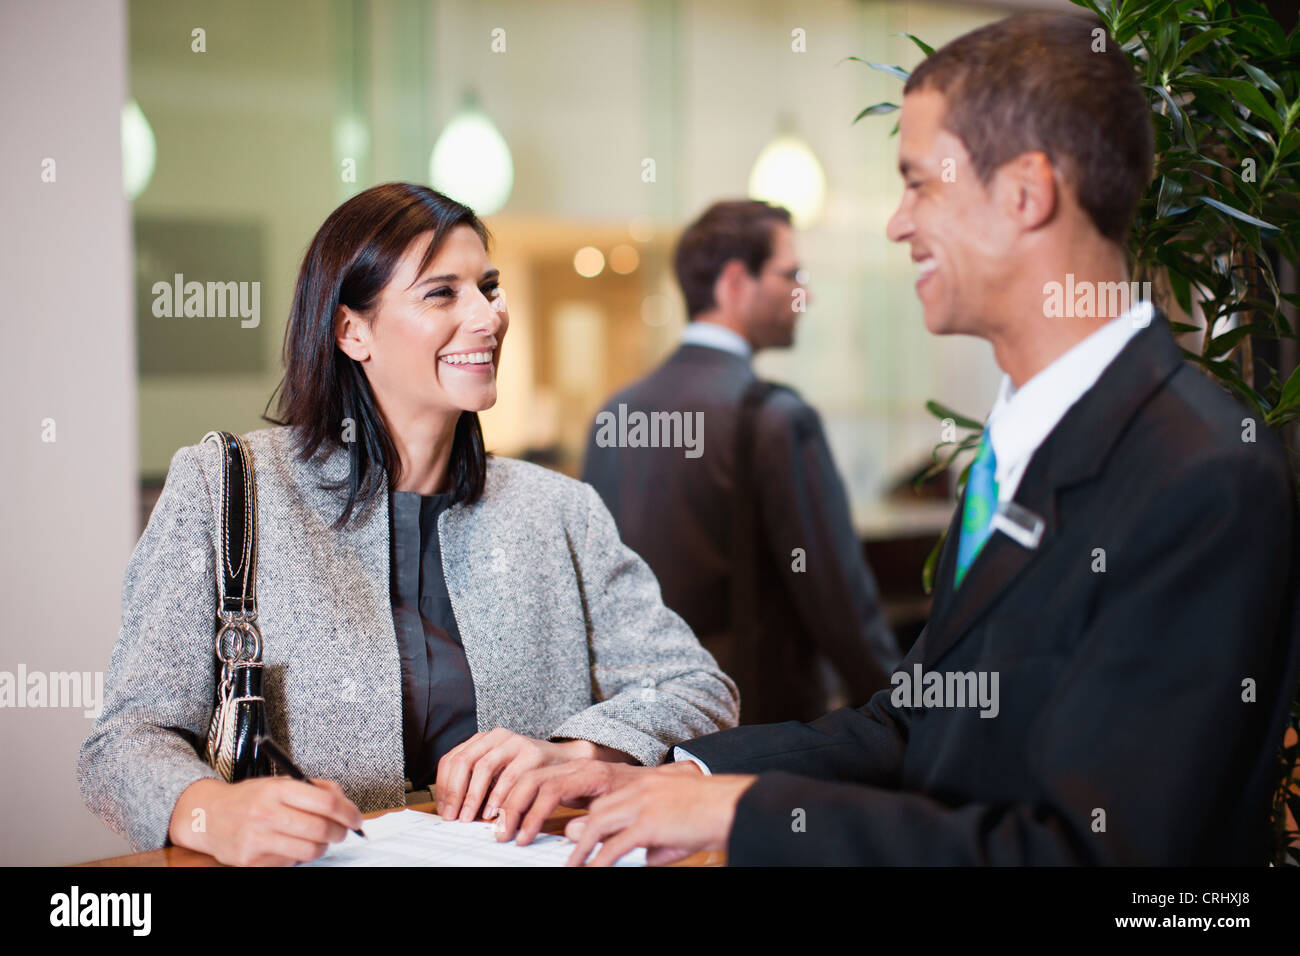 Businesswoman checking into hotel - Stock Image